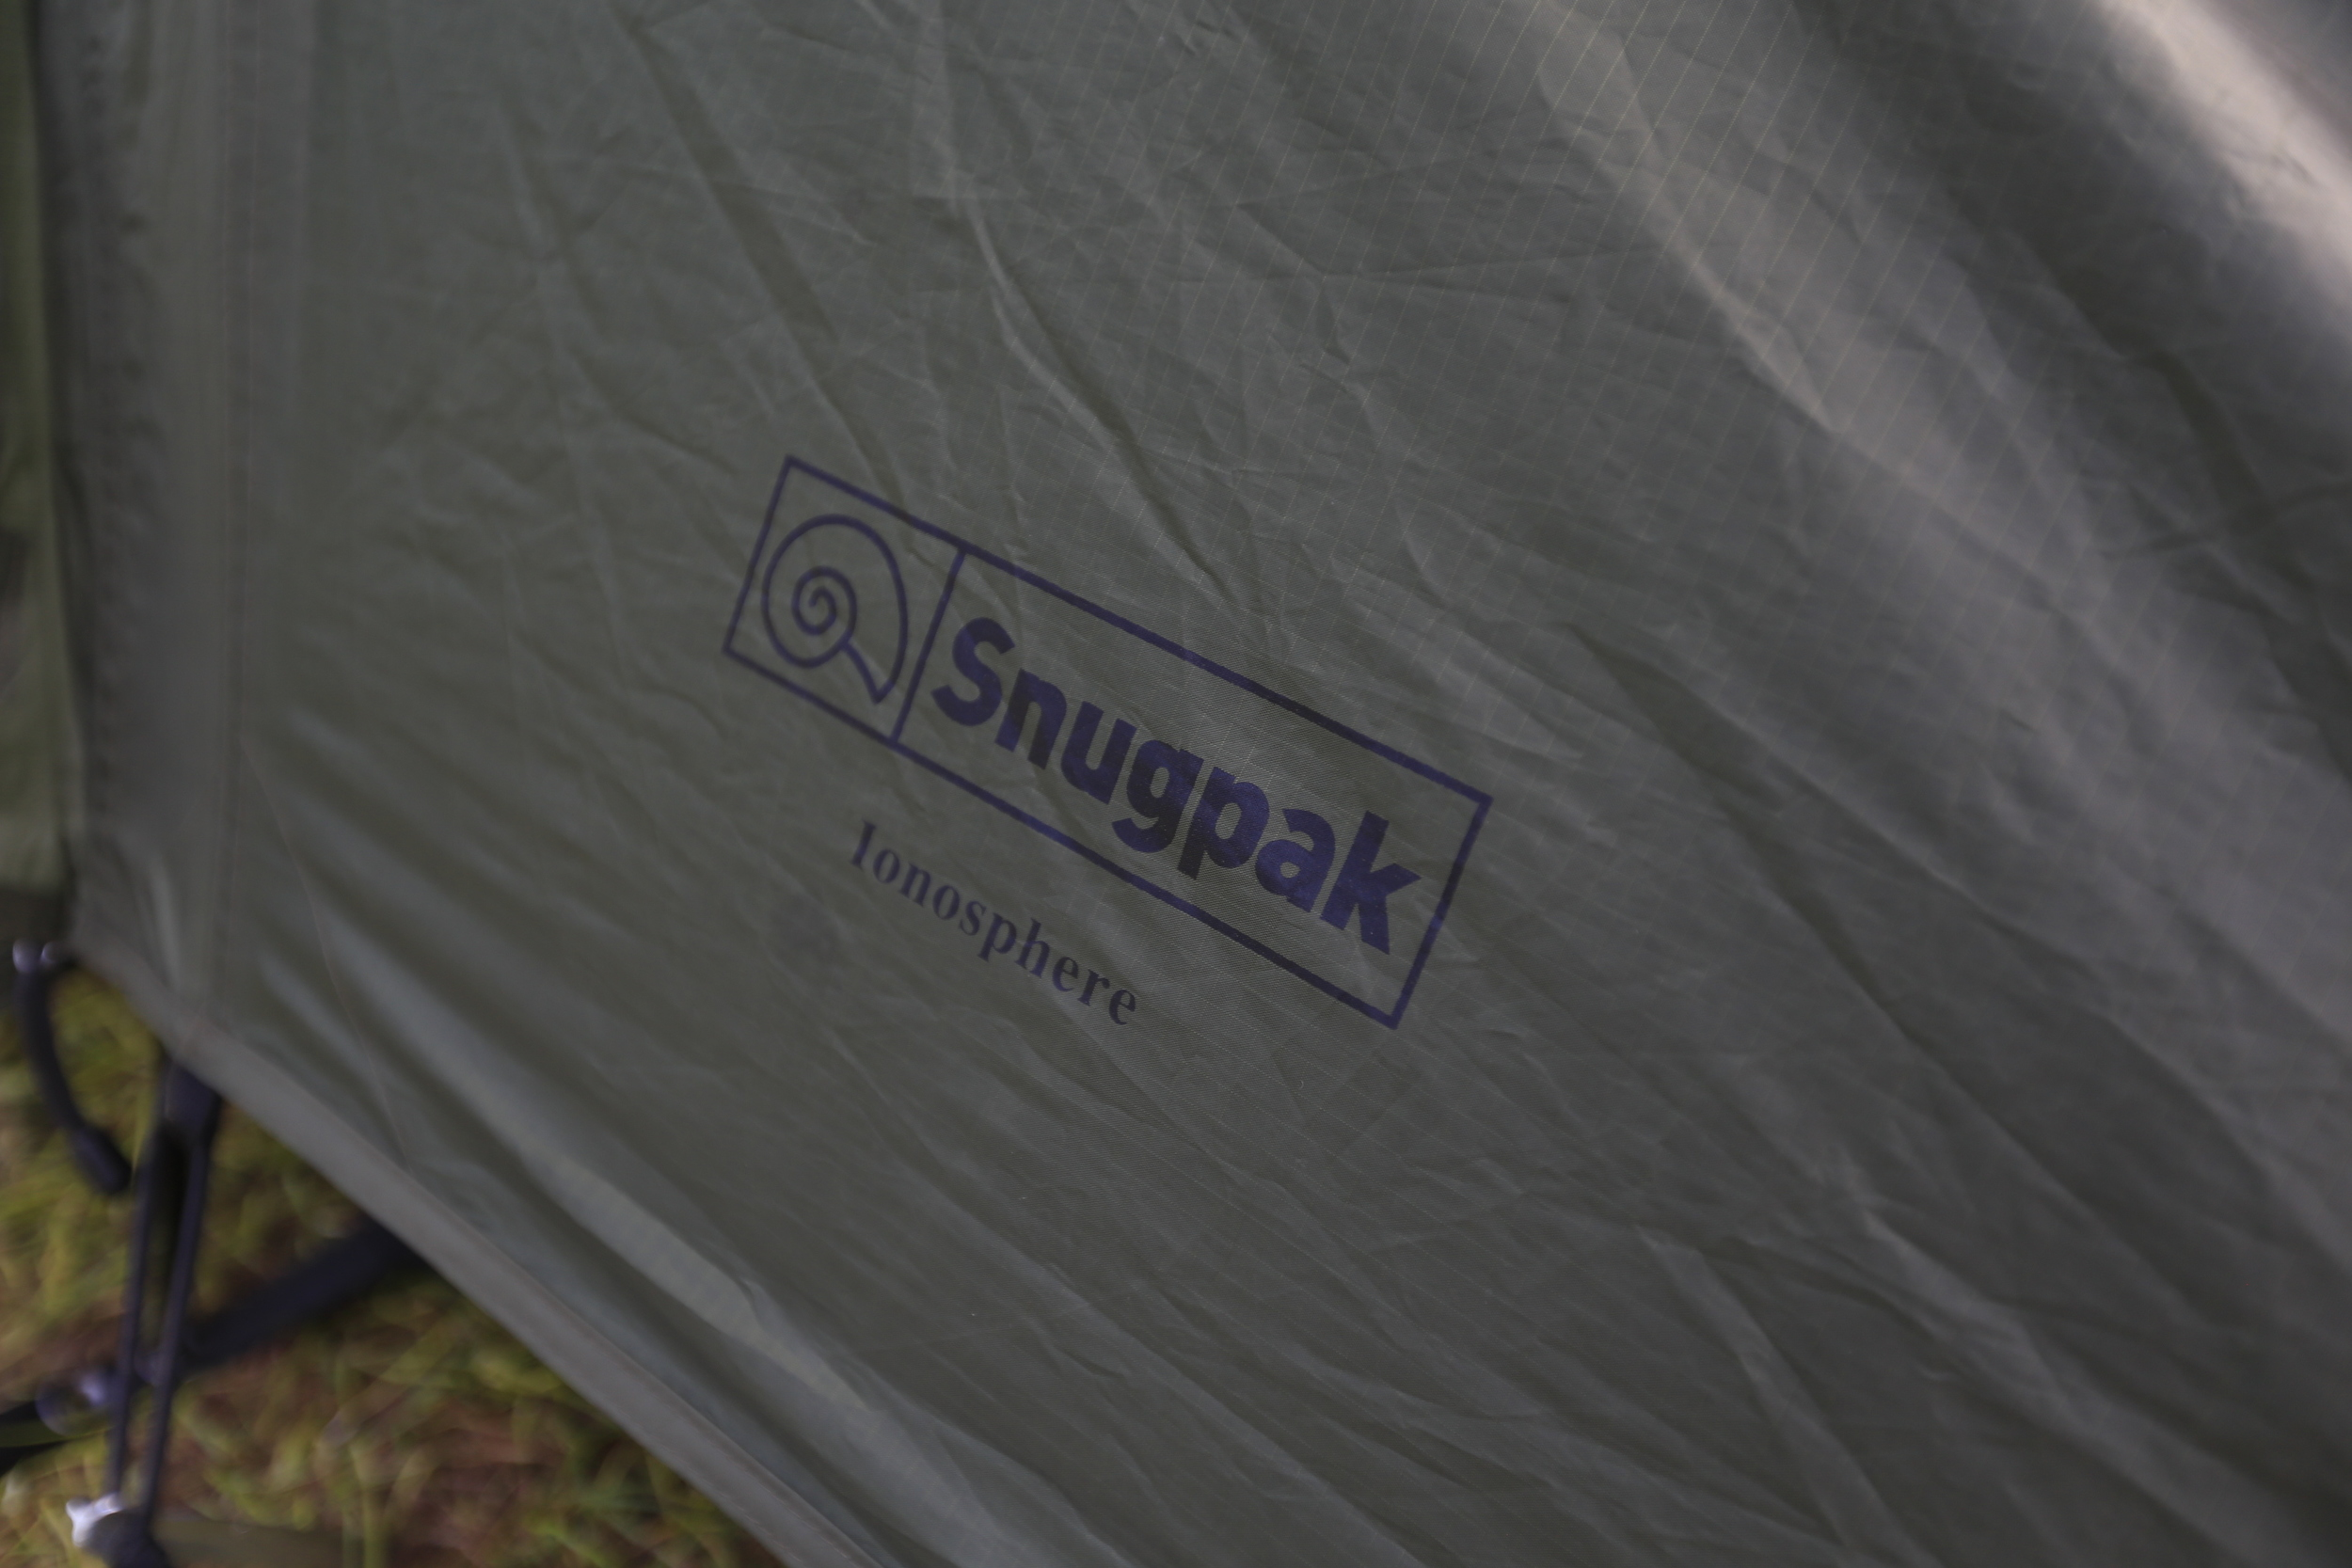 outdoors, snugpak, snugpak ionosphere, bikepacking, bikepacking tent, bikepacking gear, lightweight, lightweight camping gear, travel, travel blog, bicycle touring apocalypse, cycling blog, bikepacking blog, snugpak tents, snugpak equipment, bikepackers magazine